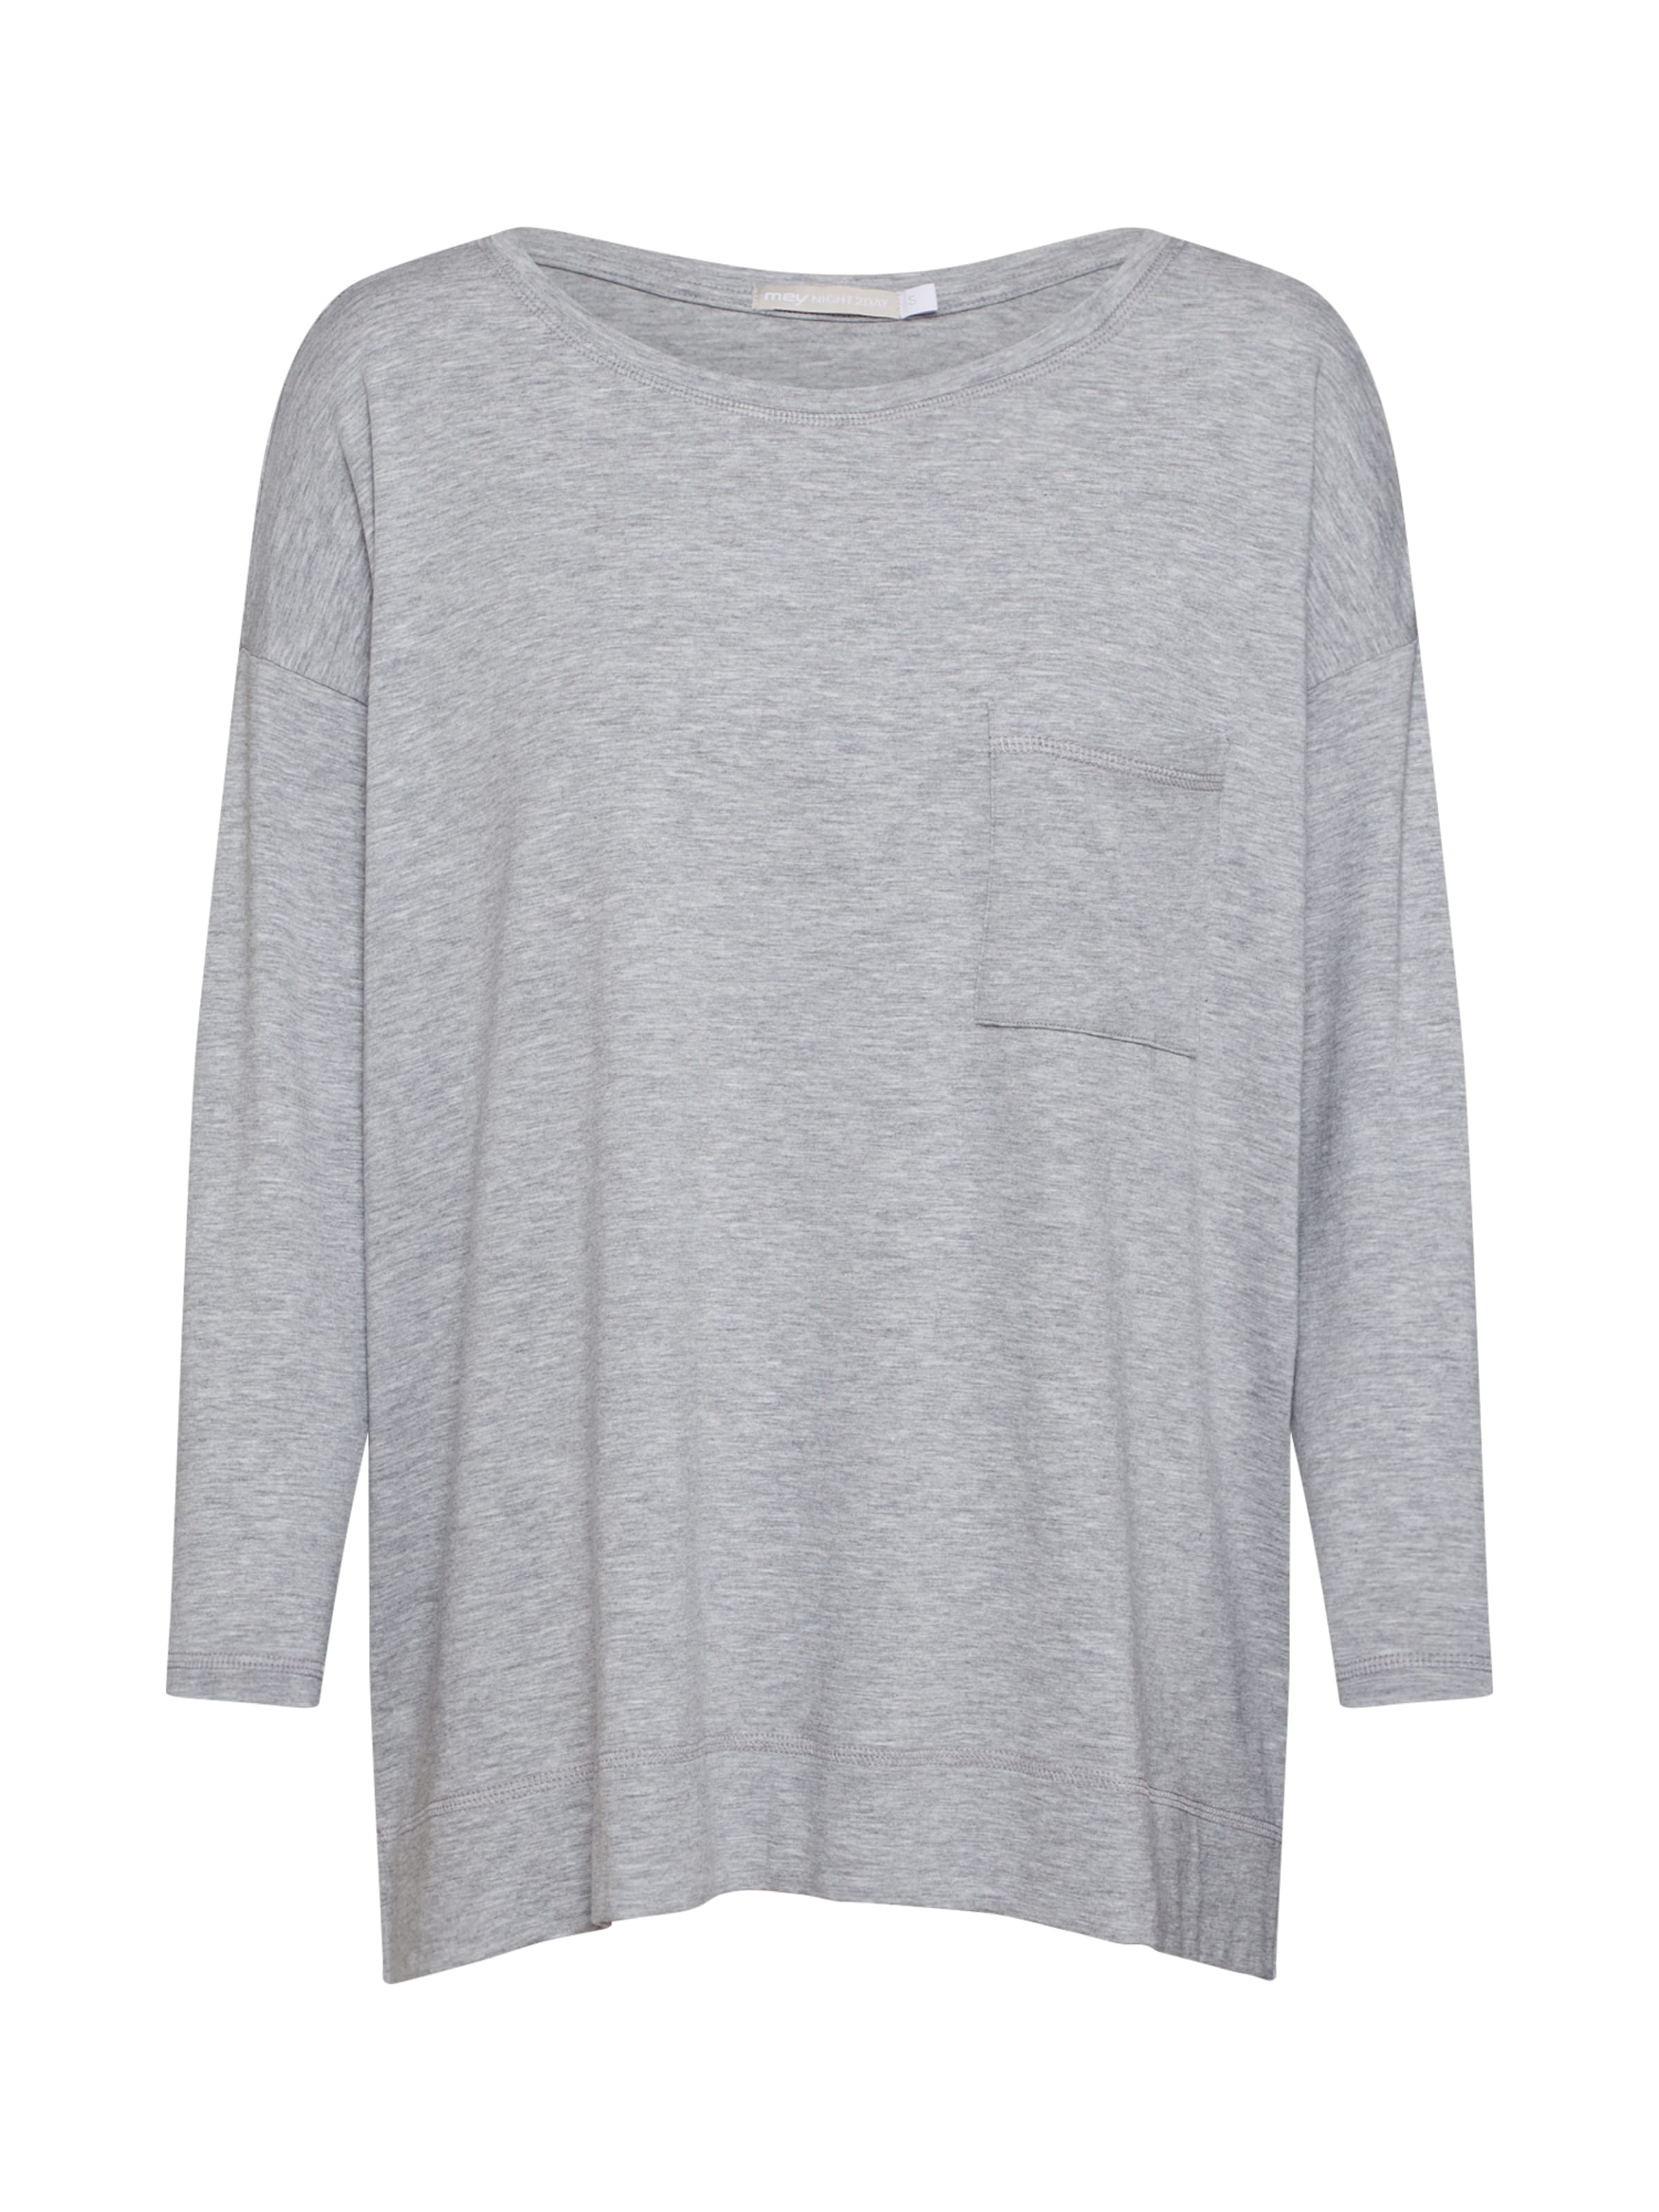 Chiné Nuit 'night2day' En De Chemise Gris Mey reCoWxdB